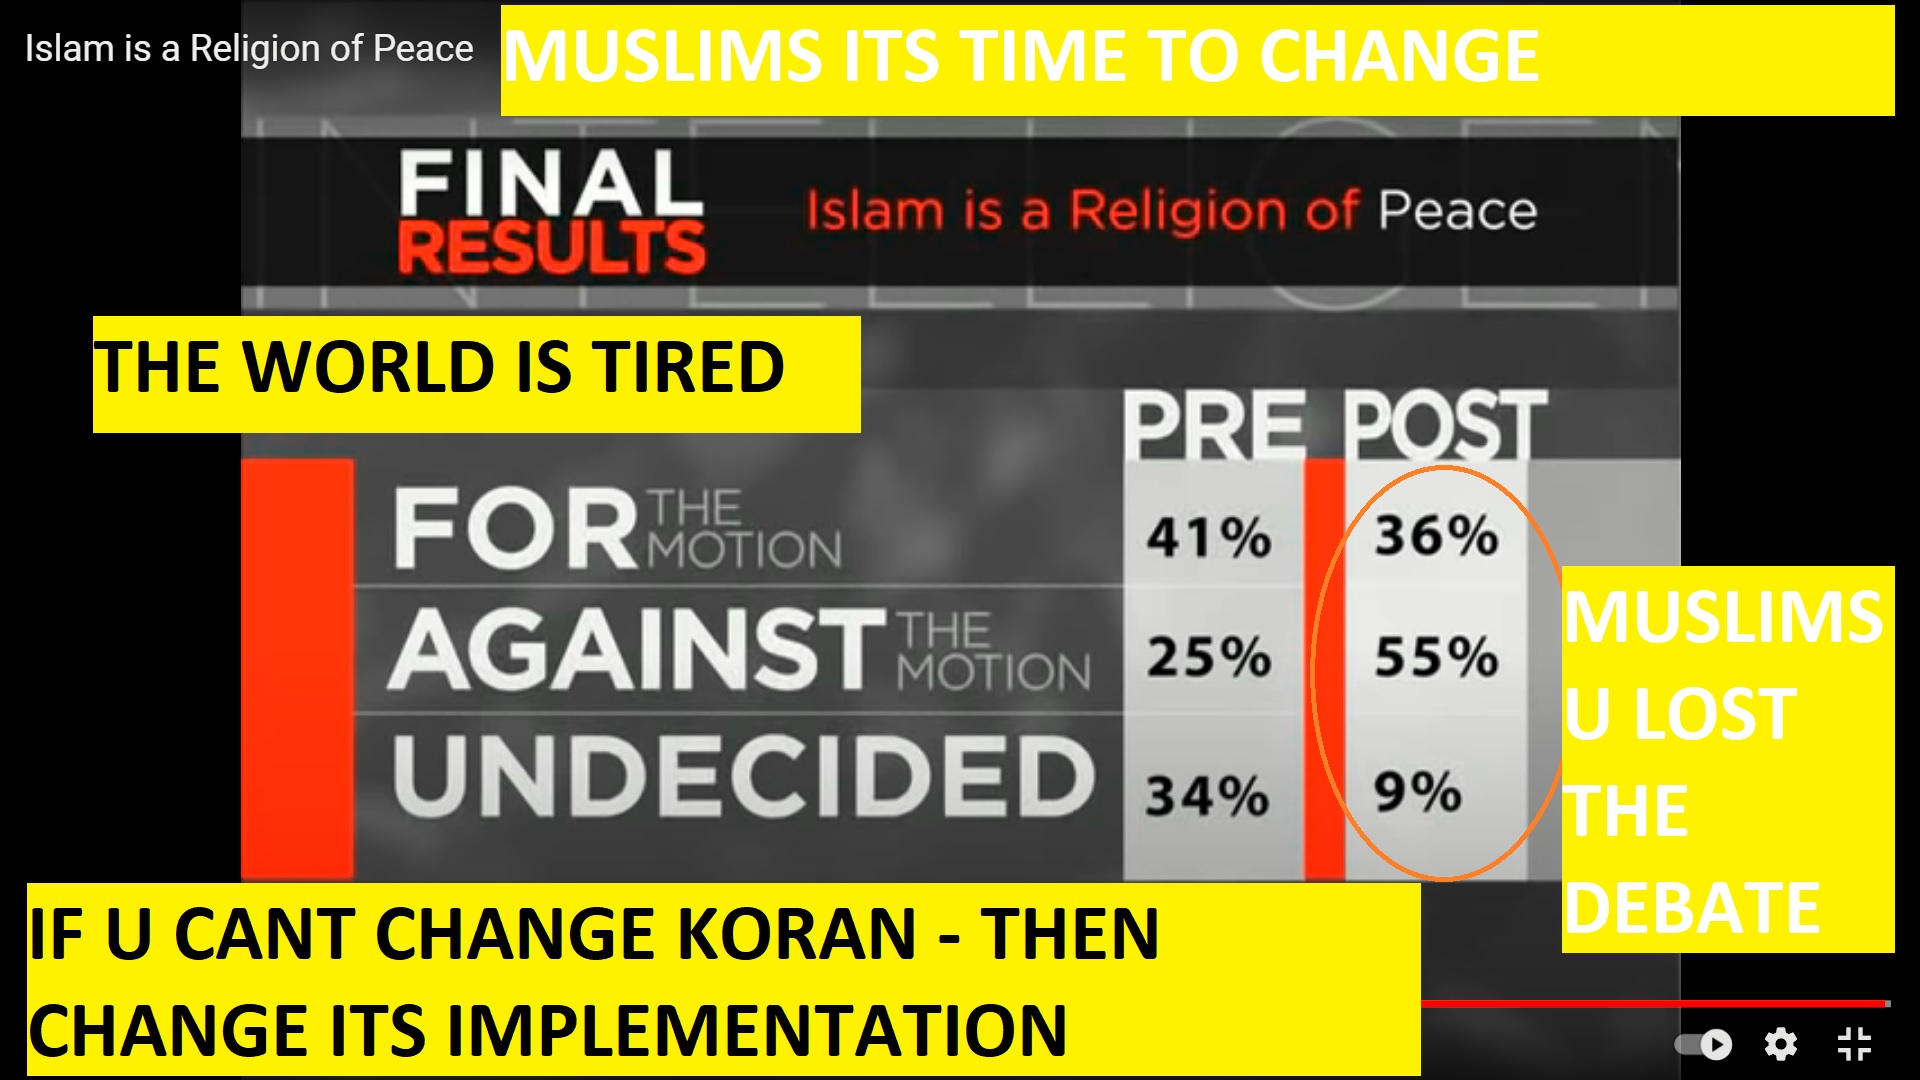 ISLAM IS NOT AOR IS A RELIGION PEACE IS A DEBATE AND THE ISLAM - SIDE -LOST SEE BELOW